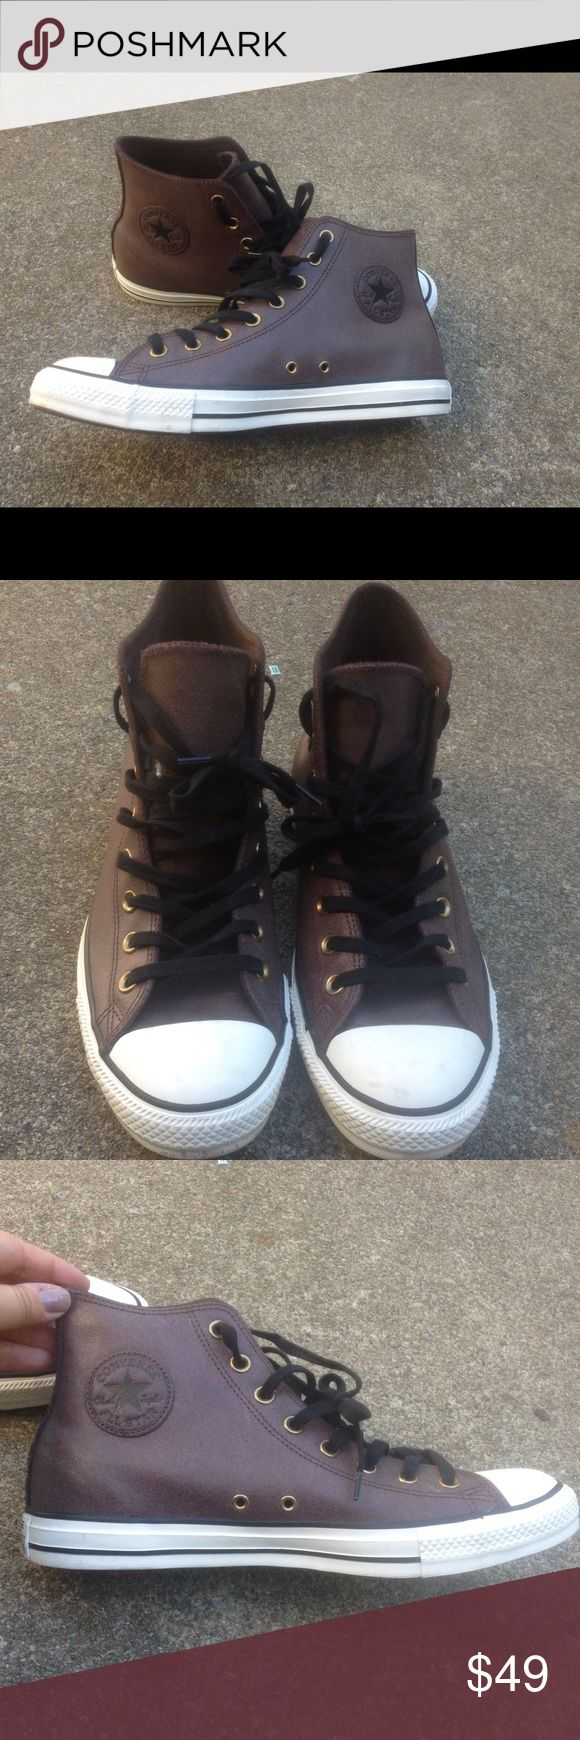 Men's Converse All Star Leather  Sneakers Size 10 Men's Converse All Star Vintage Leather  Sneakers Size 10 These are leather, nice shade of brown. Worn once,look new! Converse Shoes Athletic Shoes